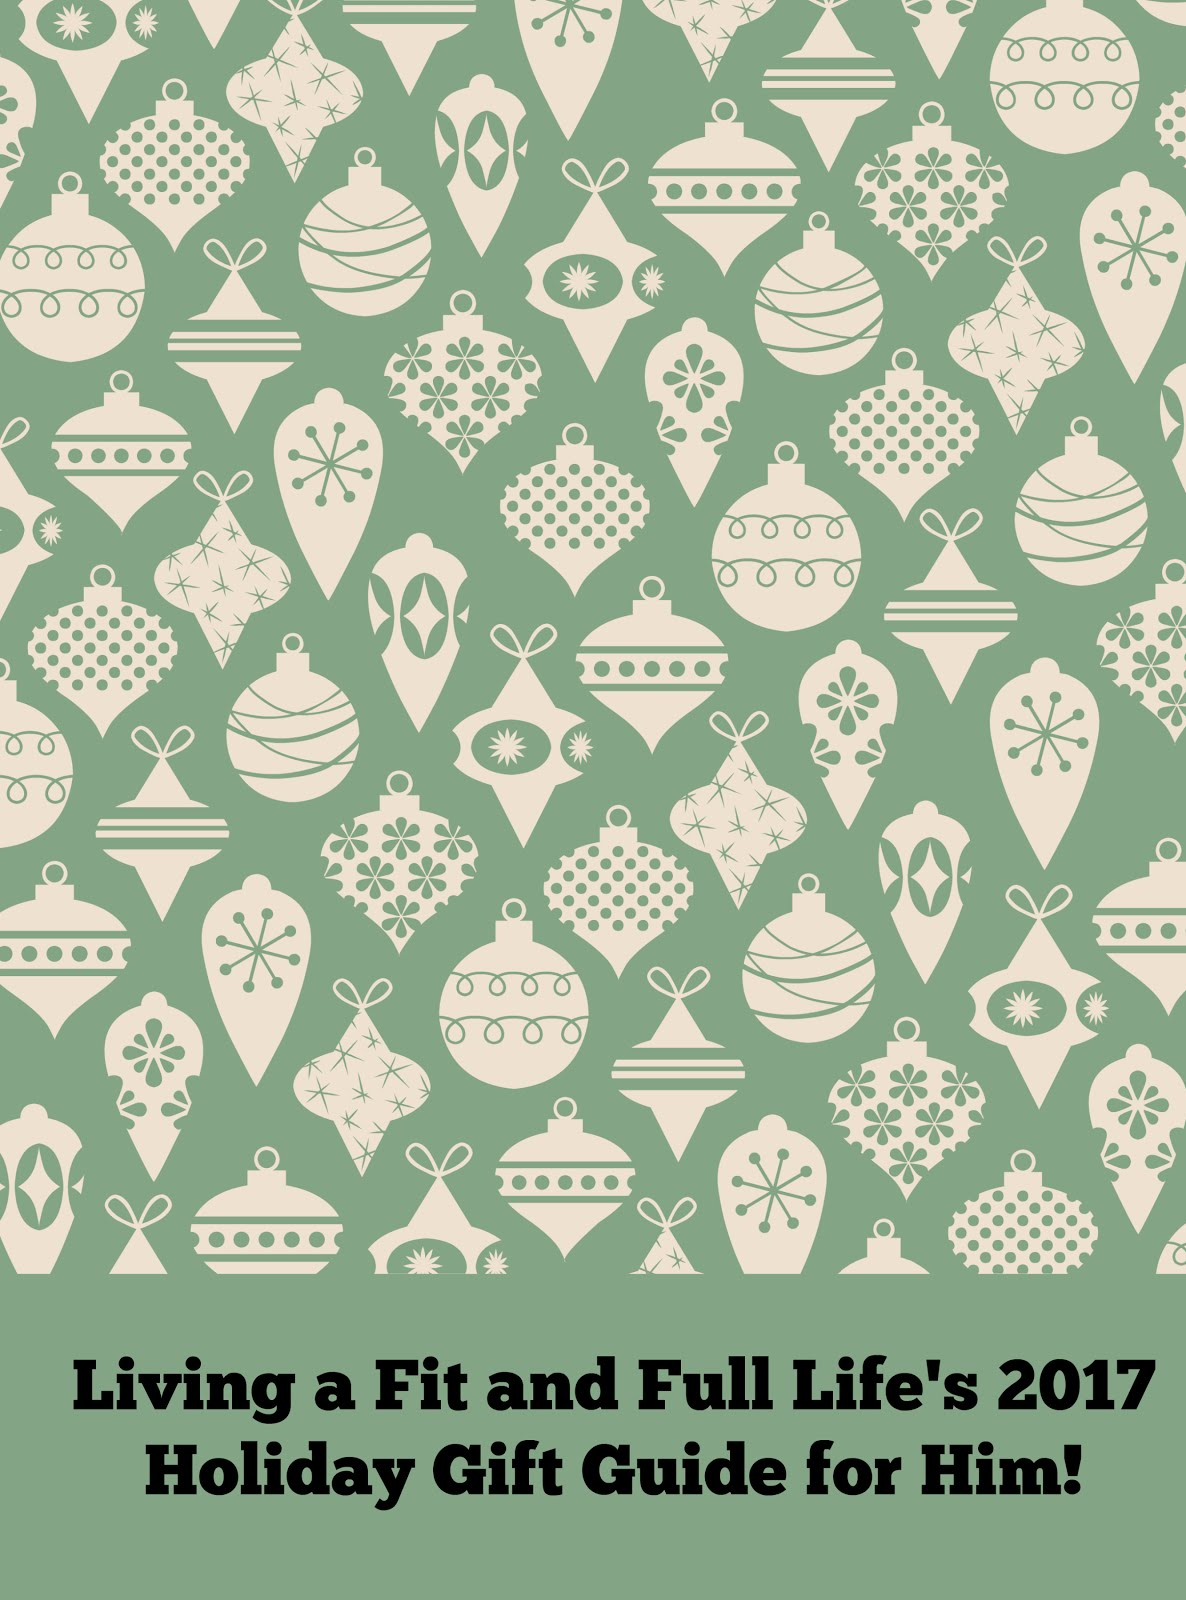 Living a Fit and Full Life's 2017 Holiday Gift Guide for Him!